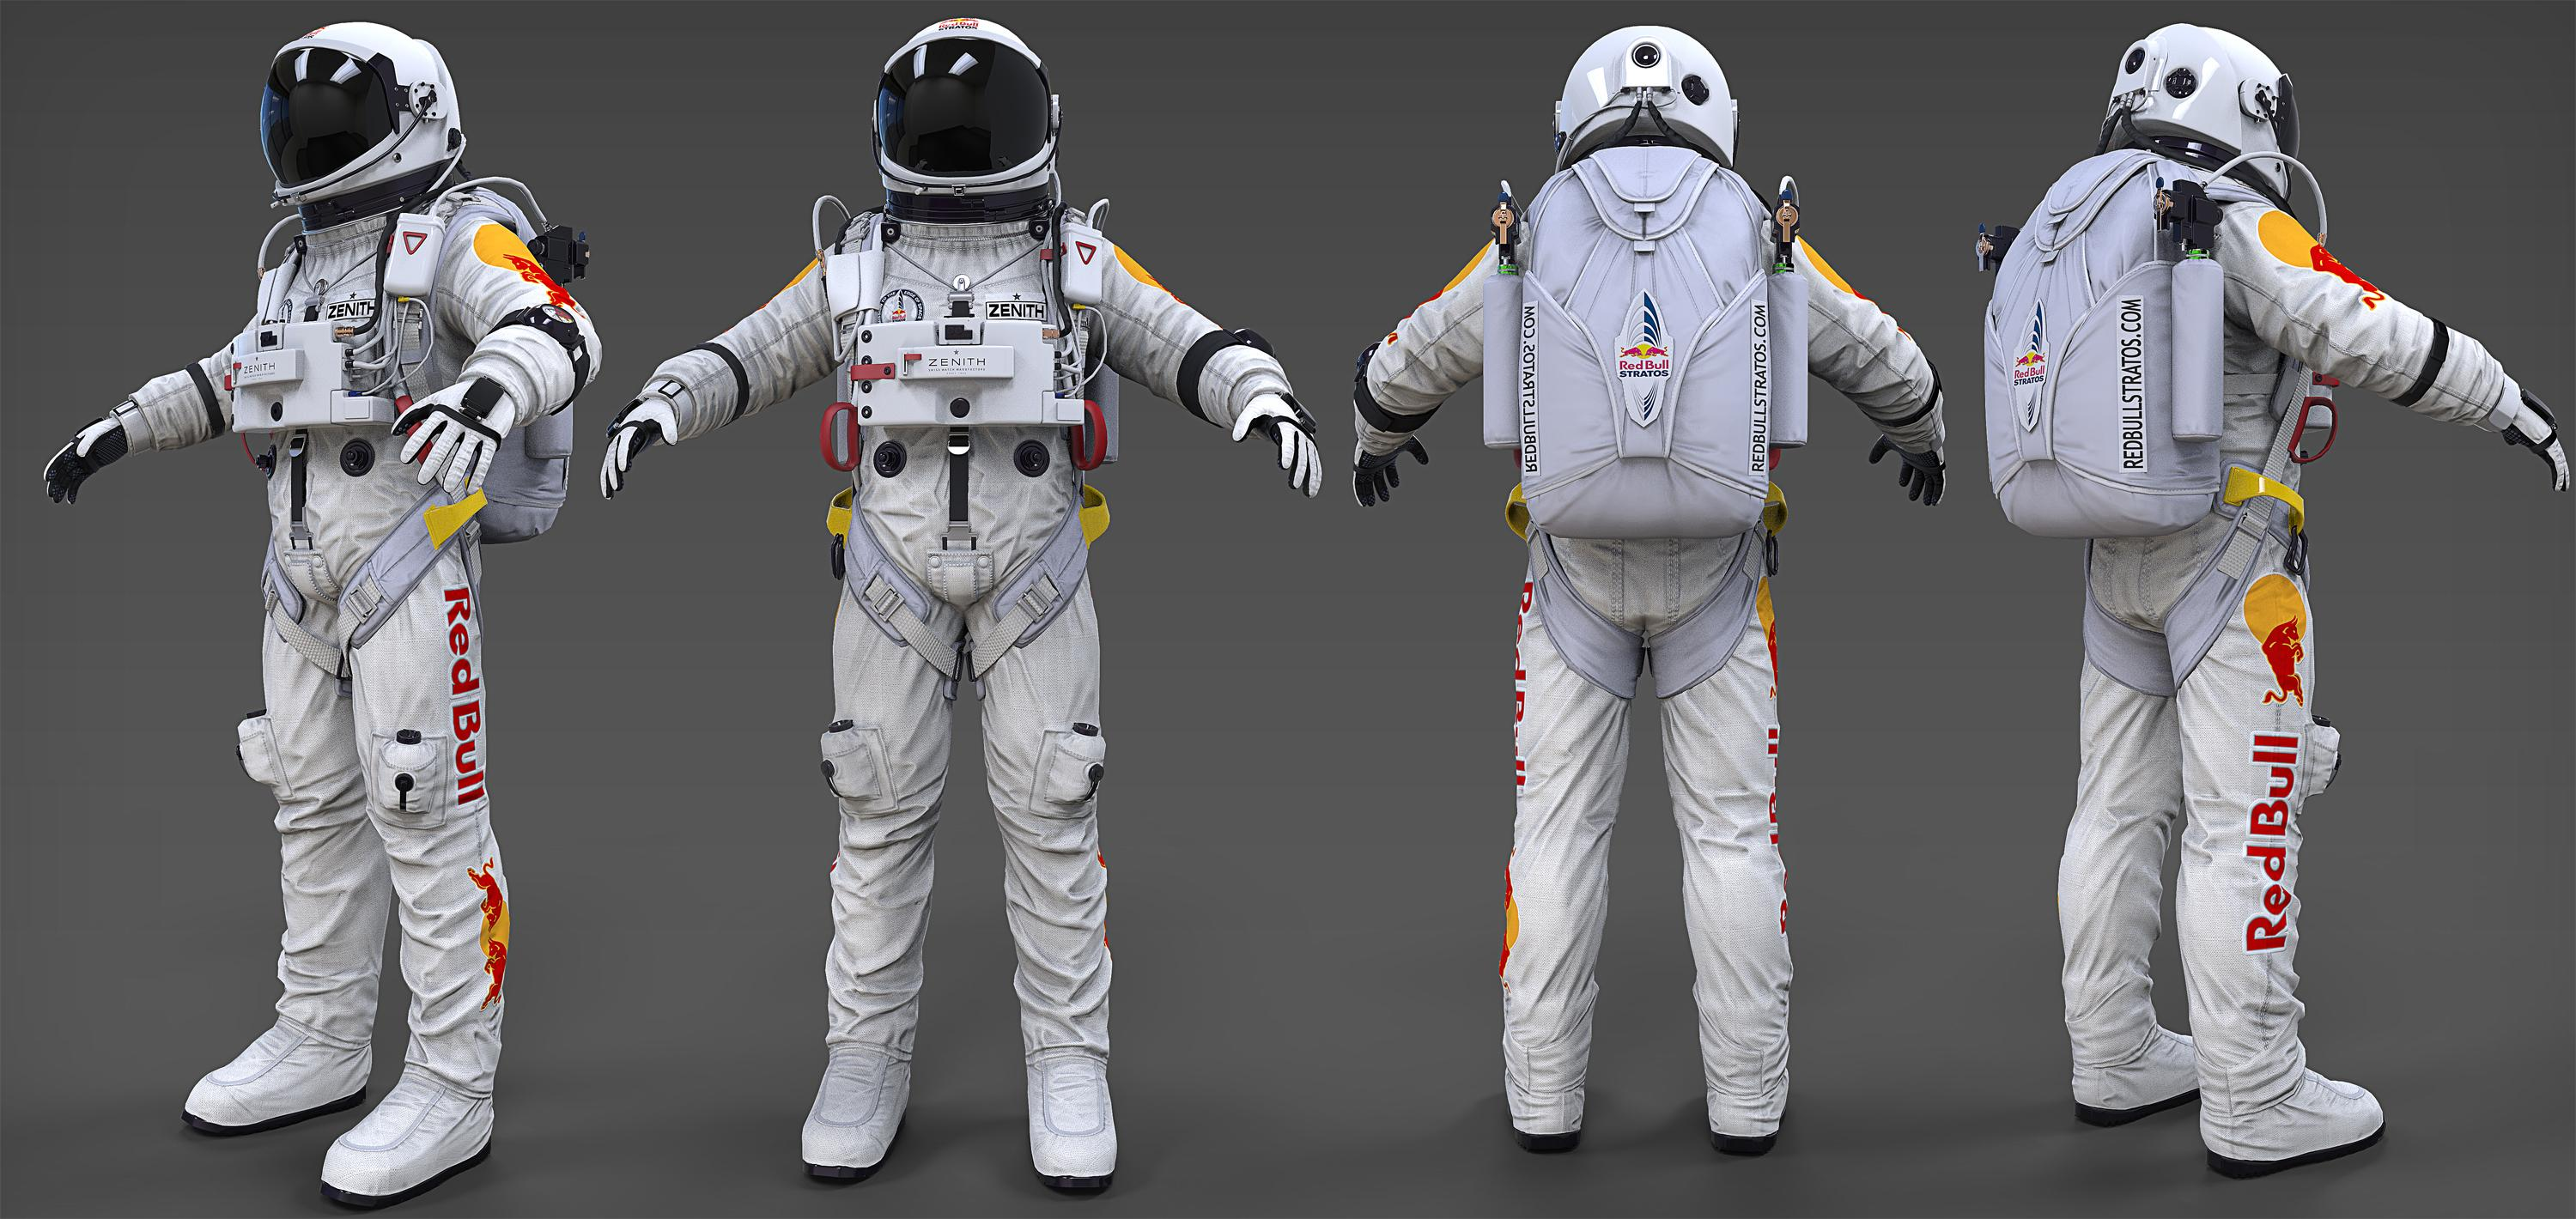 cod ghosts space suit - photo #20